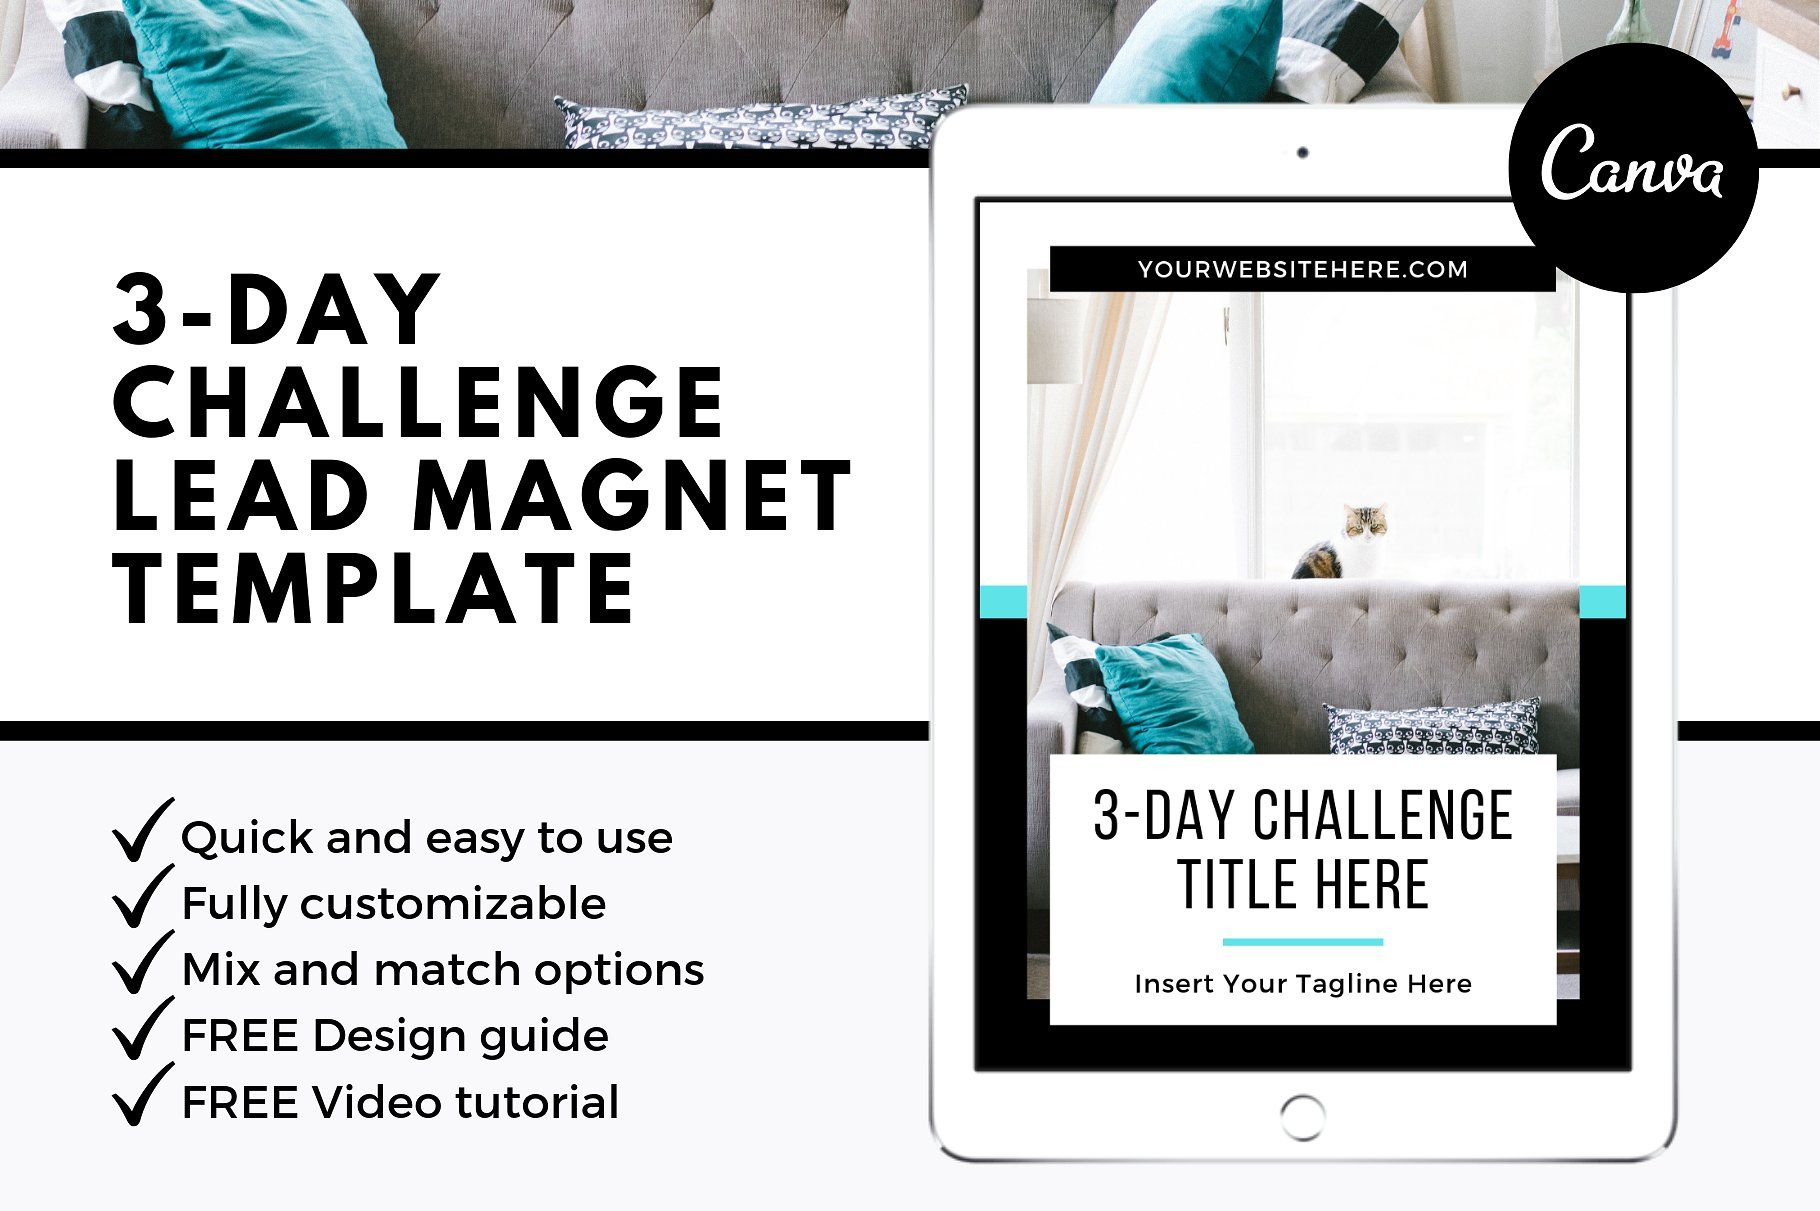 3 Day Challenge Lead Magnet Template Brain Dump Daily